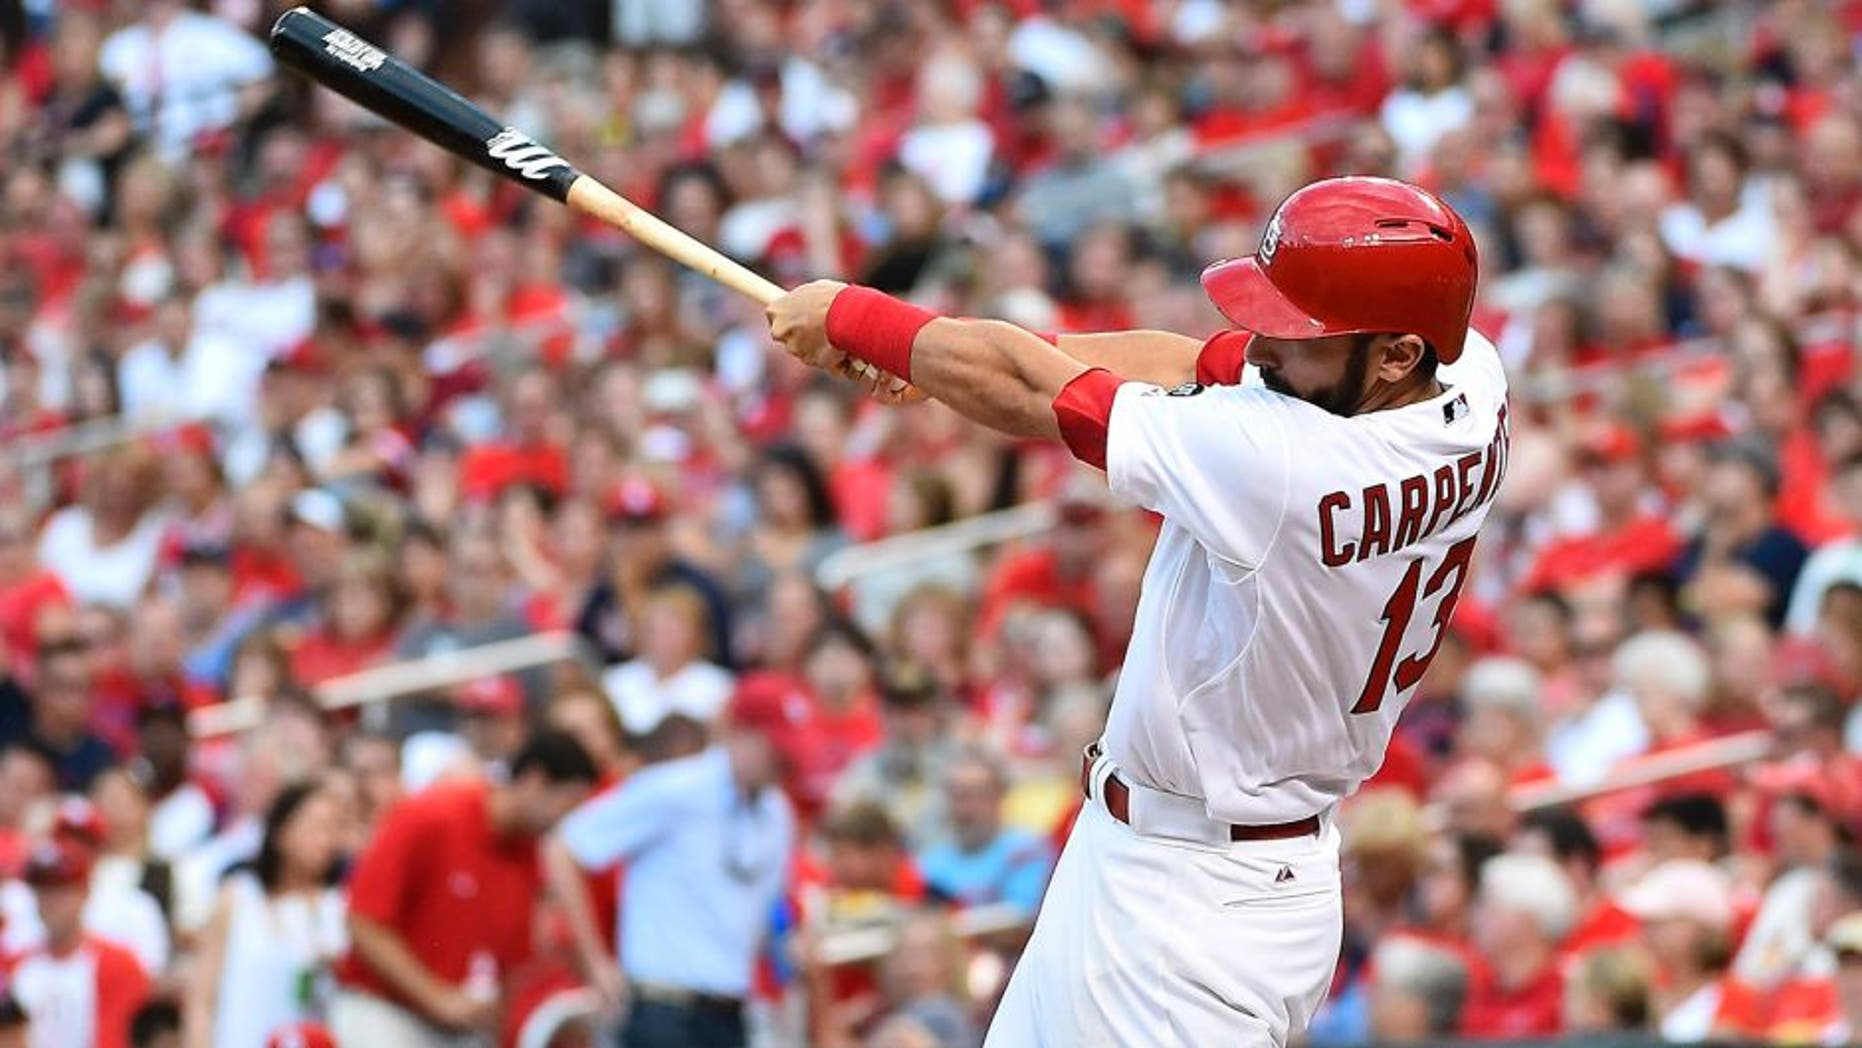 Jul 30, 2015; St. Louis, MO, USA; St. Louis Cardinals third baseman Matt Carpenter (13) connects for a three-run home run off of Colorado Rockies starting pitcher Chris Rusin (not pictured) in the second inning at Busch Stadium. Mandatory Credit: Jasen Vinlove-USA TODAY Sports